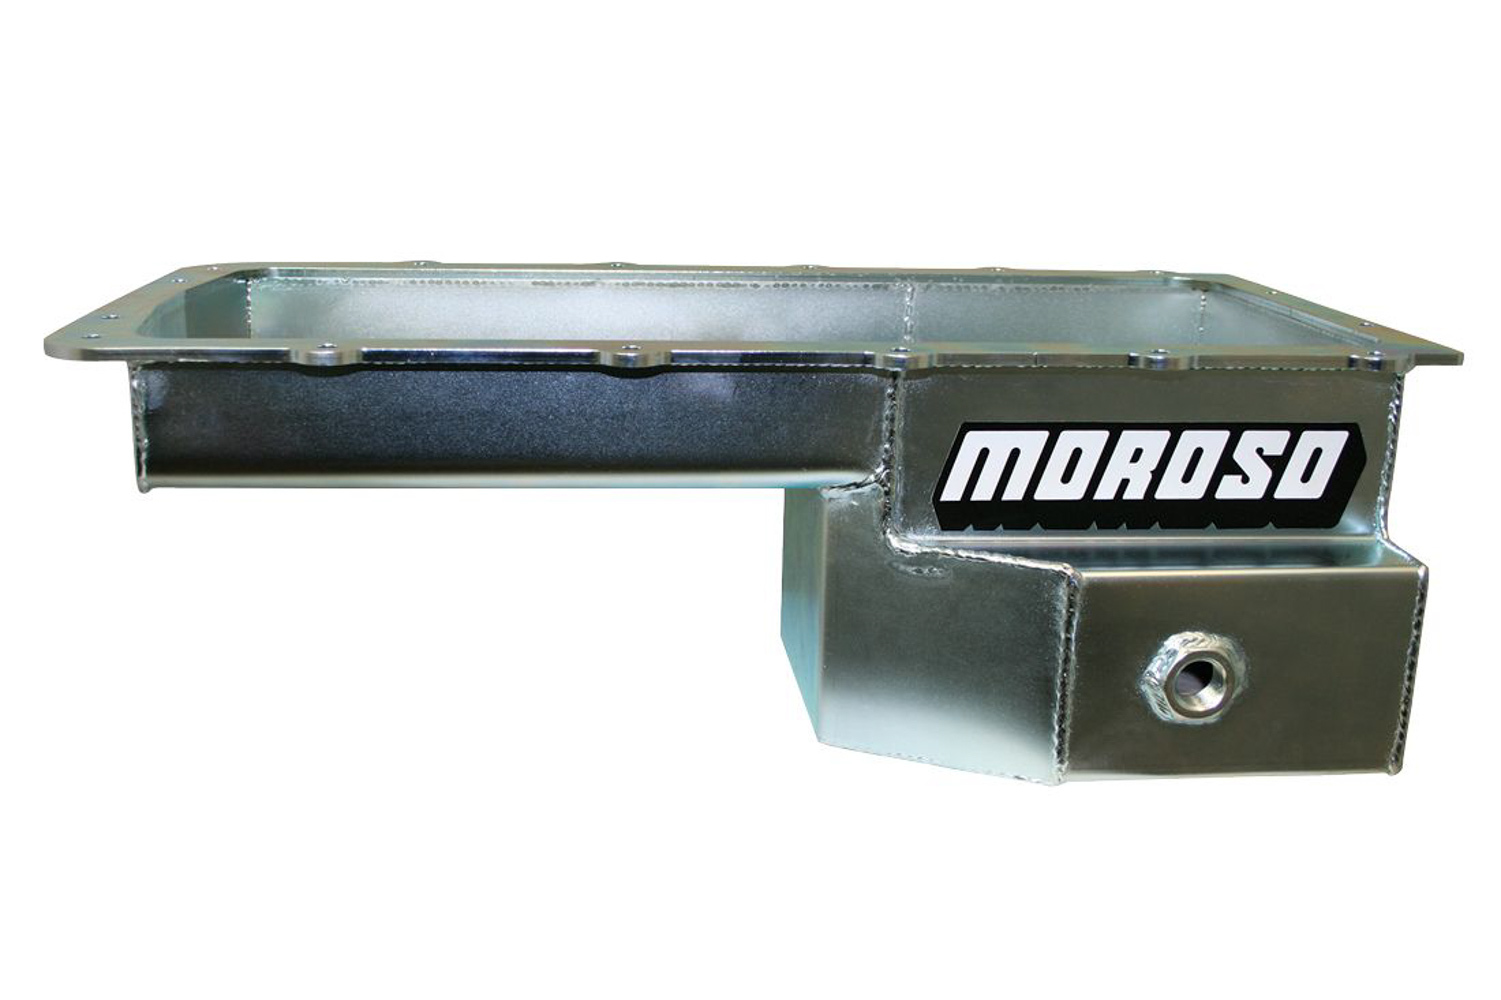 Moroso 20575 Engine Oil Pan, Road Race, Rear Sump, 7.5 qt, 6.625 in Deep, Baffled, Steel, Zinc Oxide, Ford Coyote, Ford Mustang 1979-93, Each